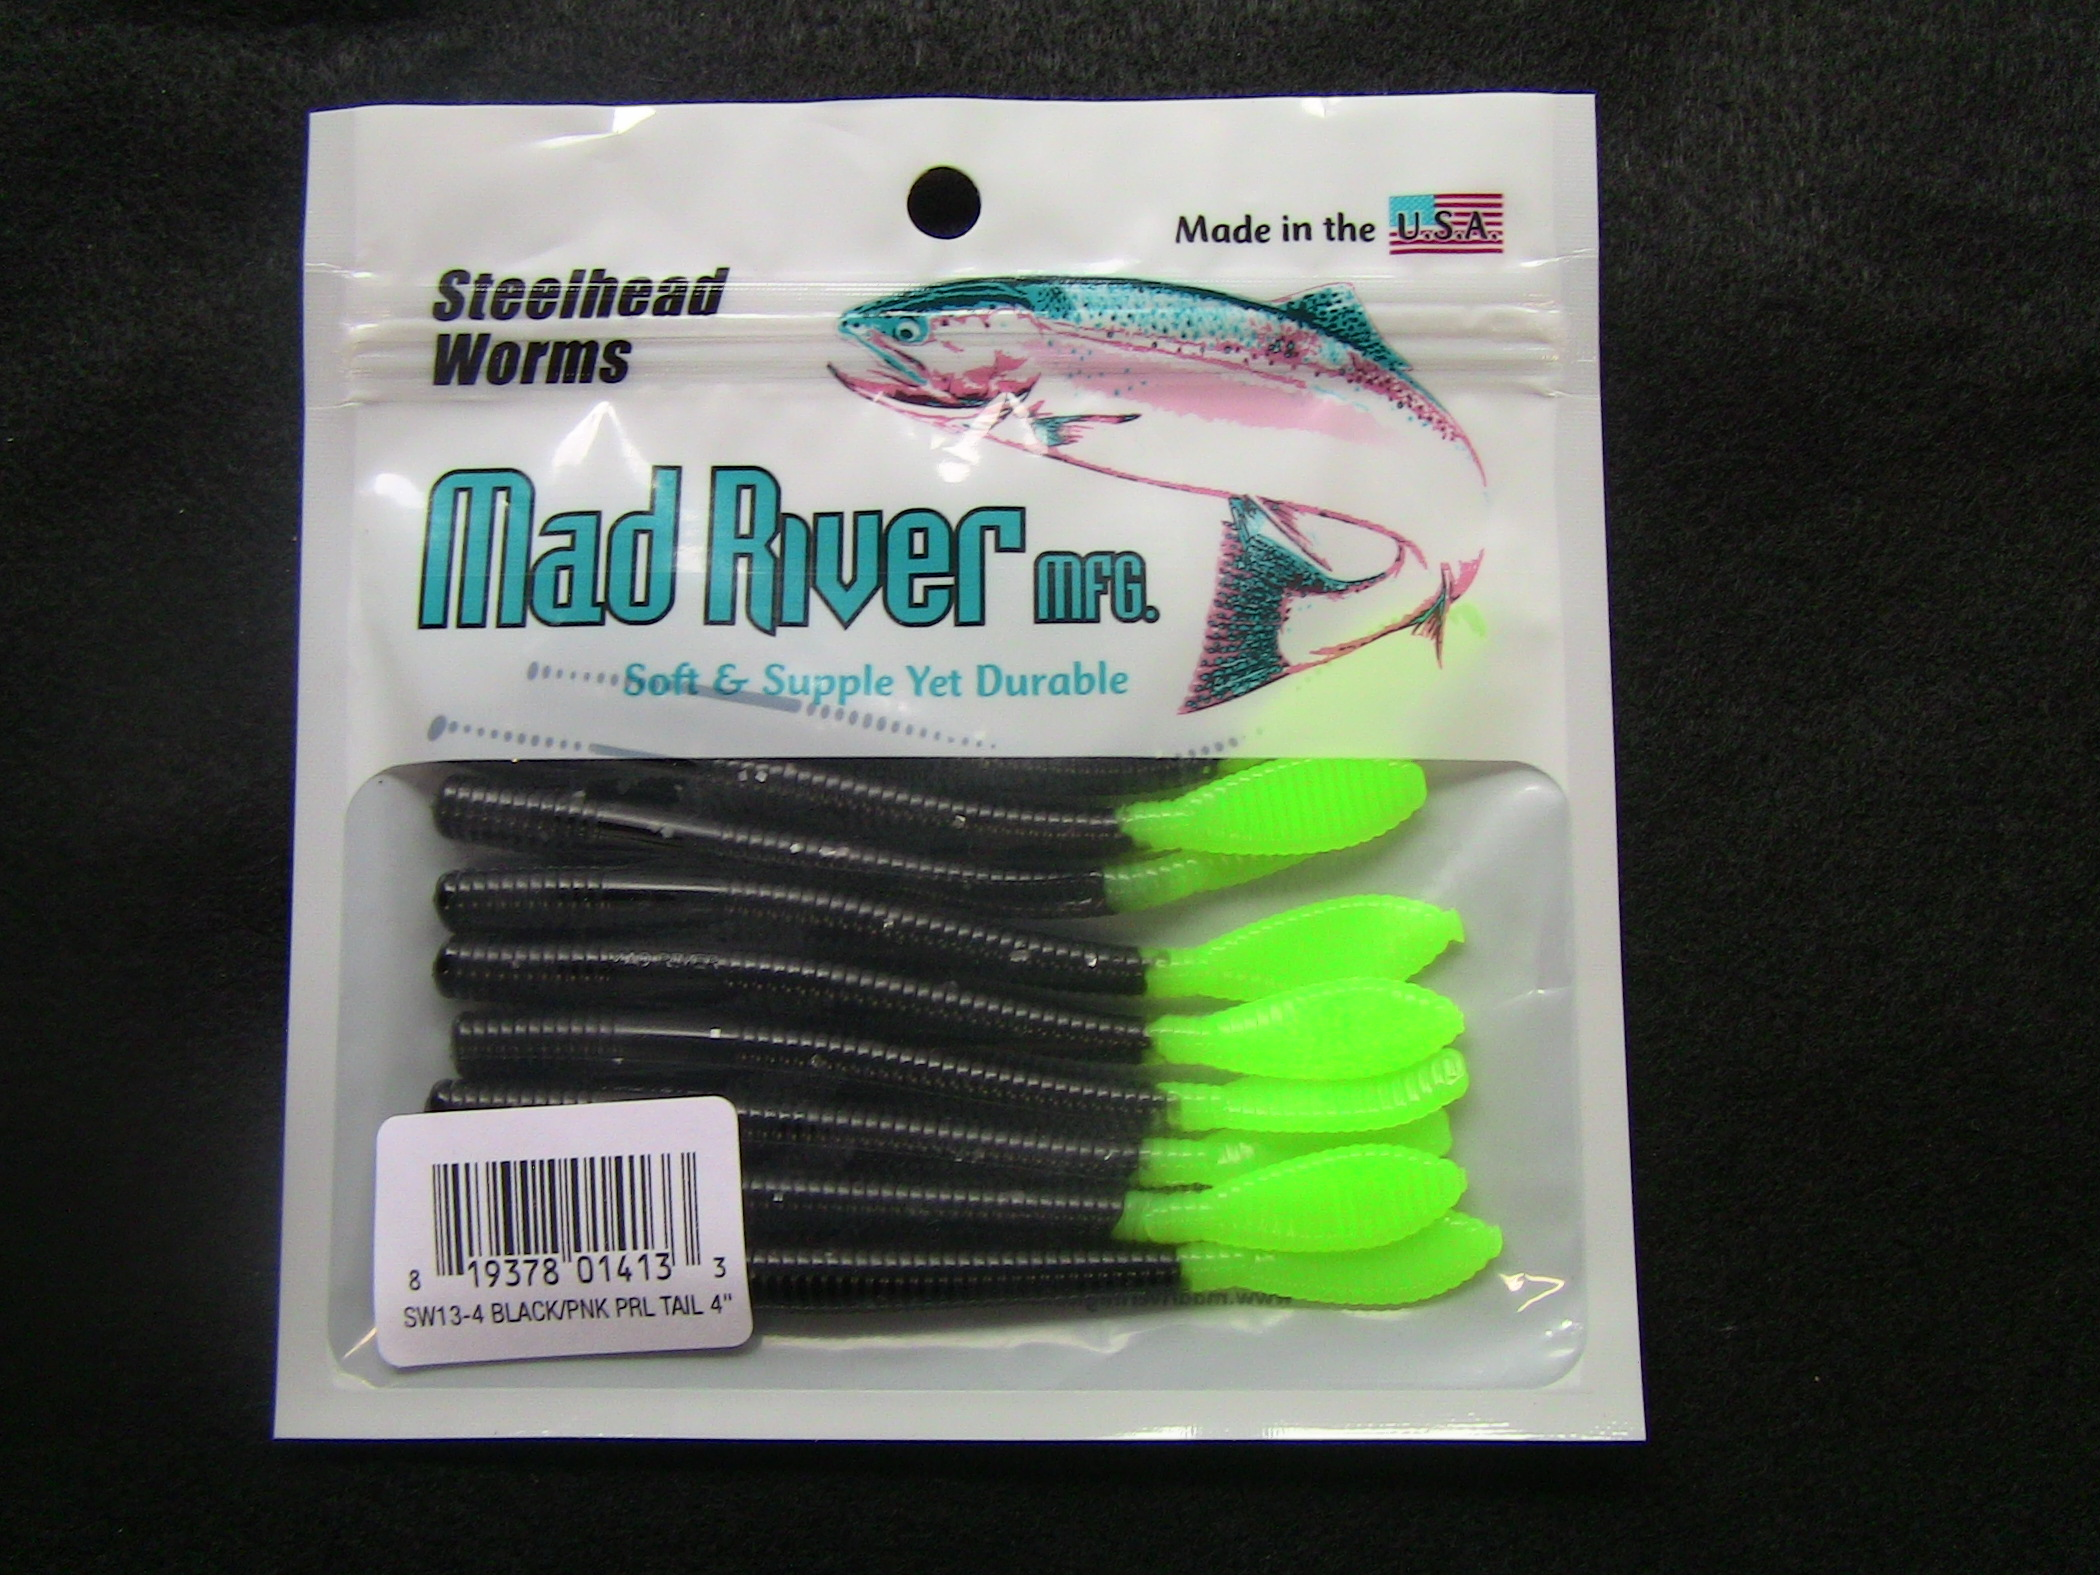 be8dc292e1b Mad River Manufacturing - Steelhead Worms and Jigs